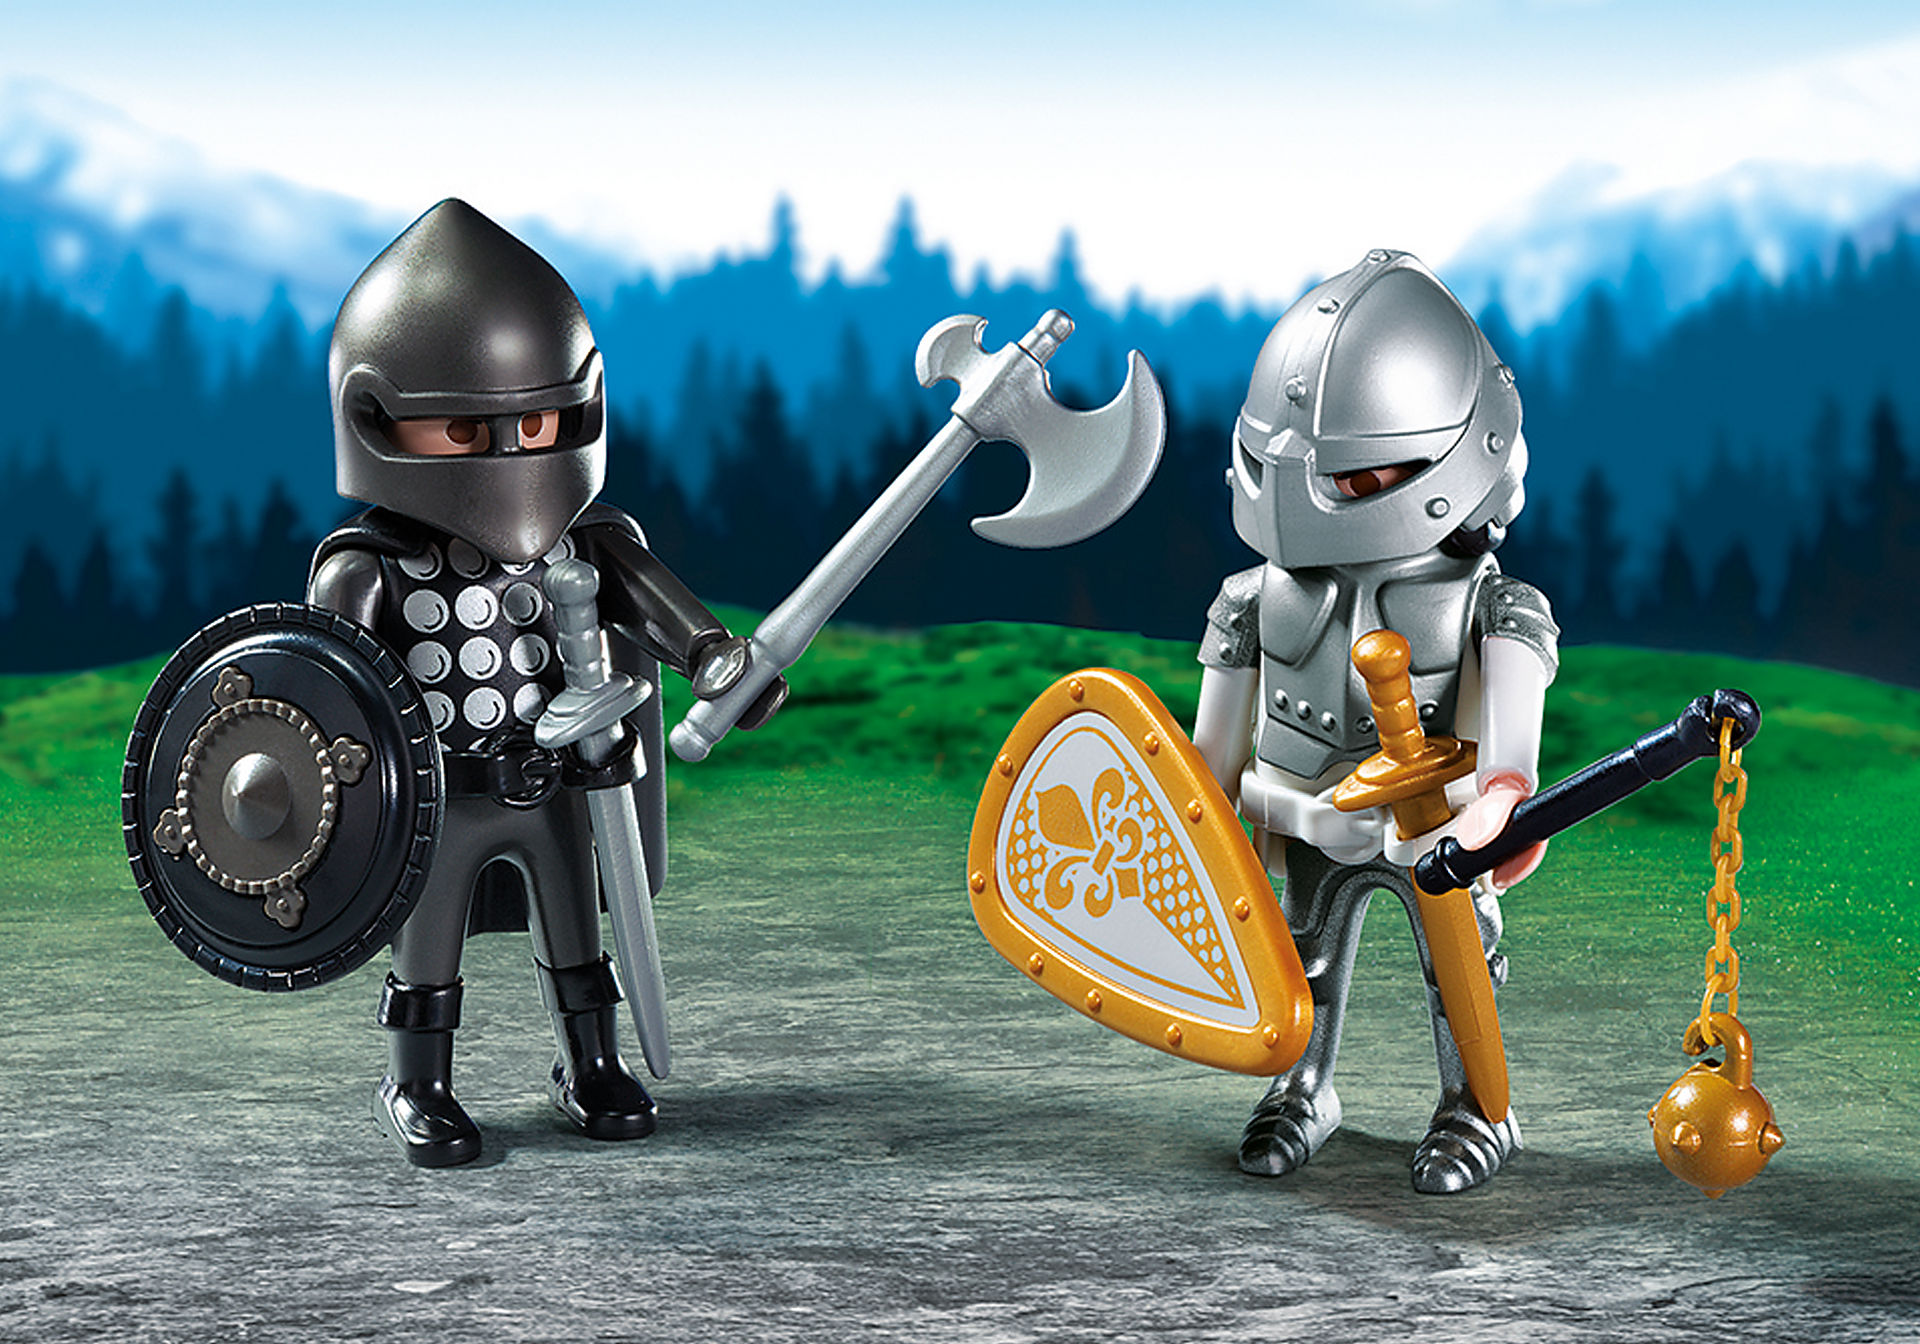 6847 Knights' Rivalry Duo Pack zoom image1